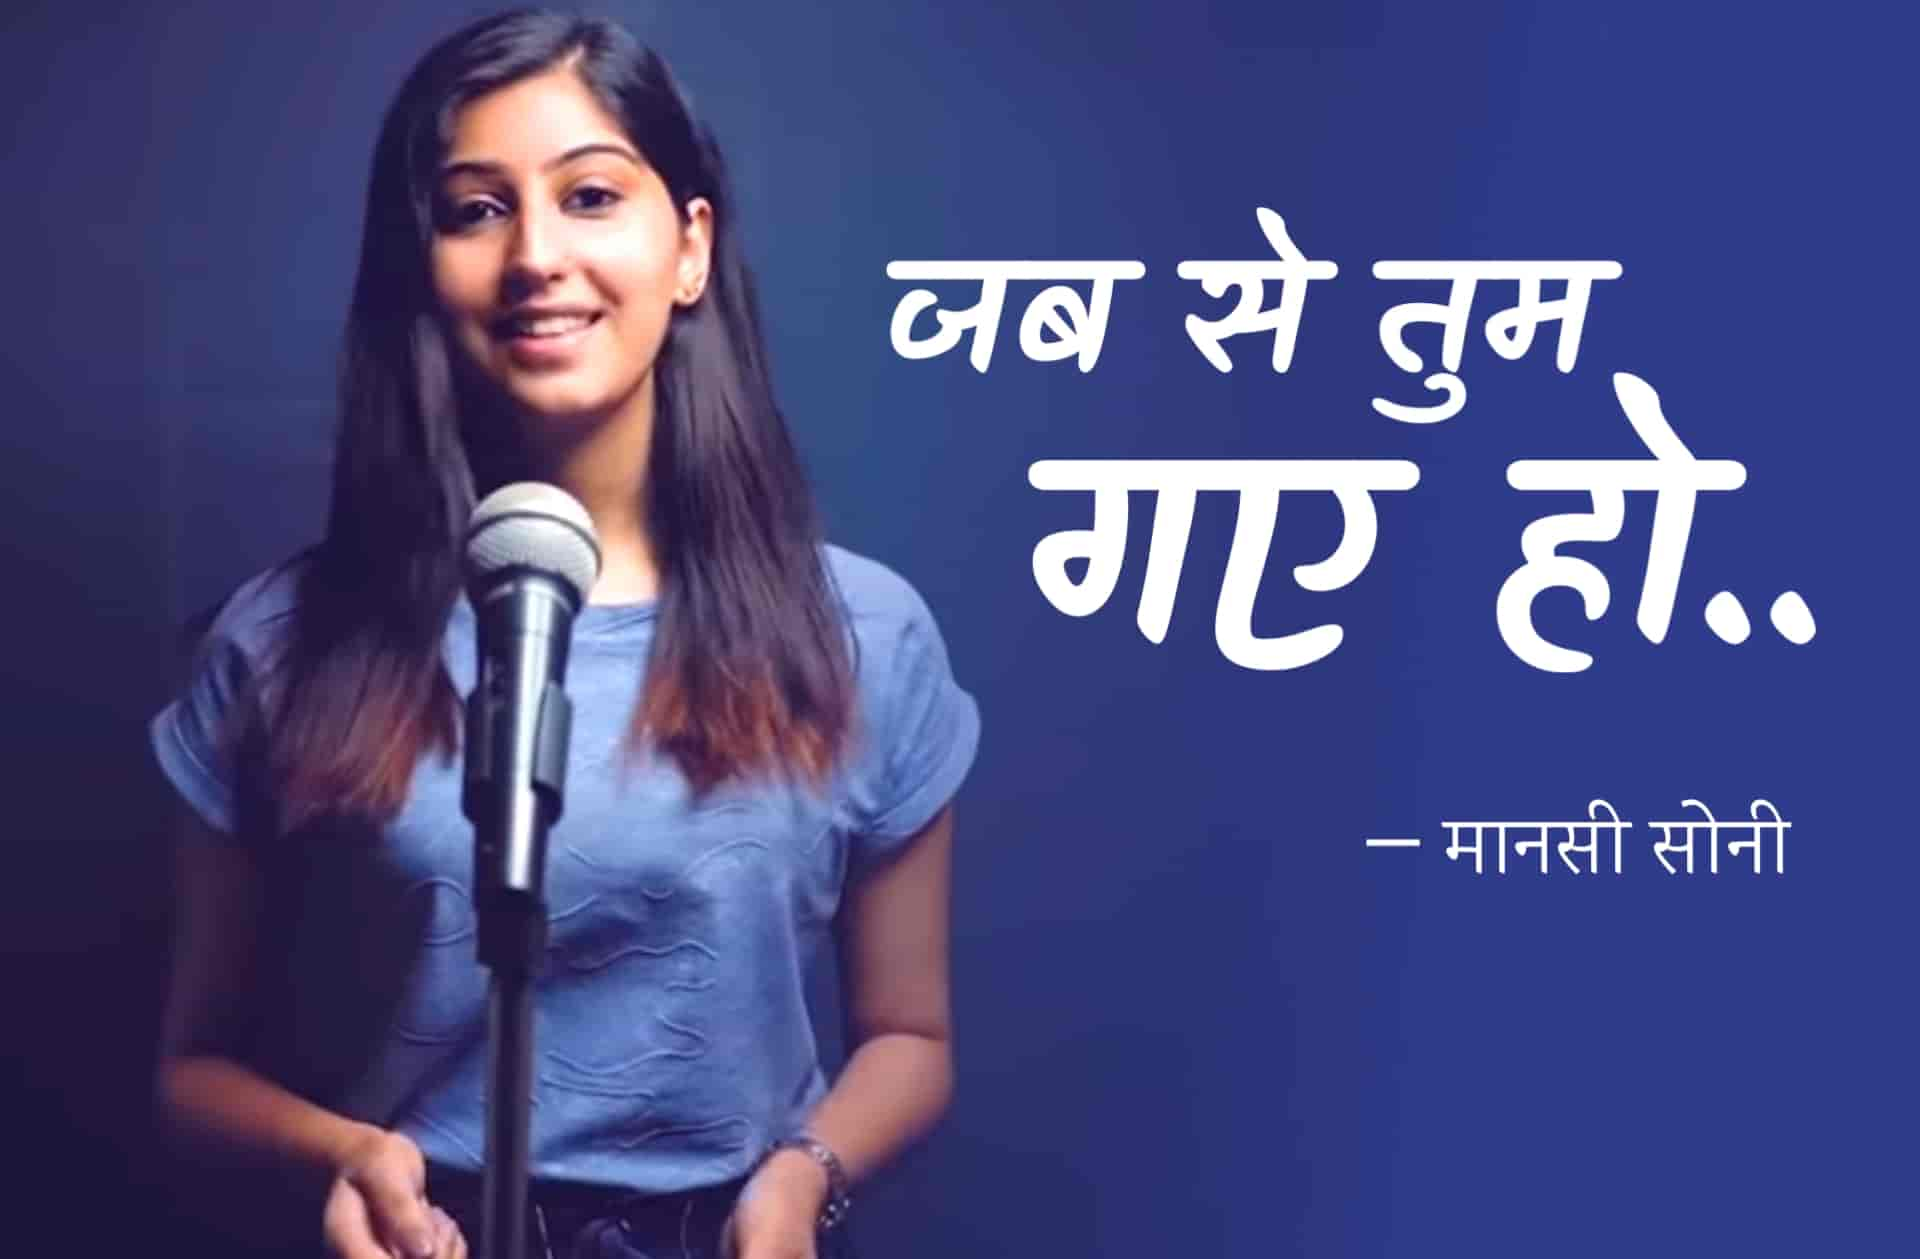 This beautiful poetry 'Jab Se Tum Gaye Ho', written by Mansi Soni, makes this poetry feel like an experience when someone leaves someone and realizes